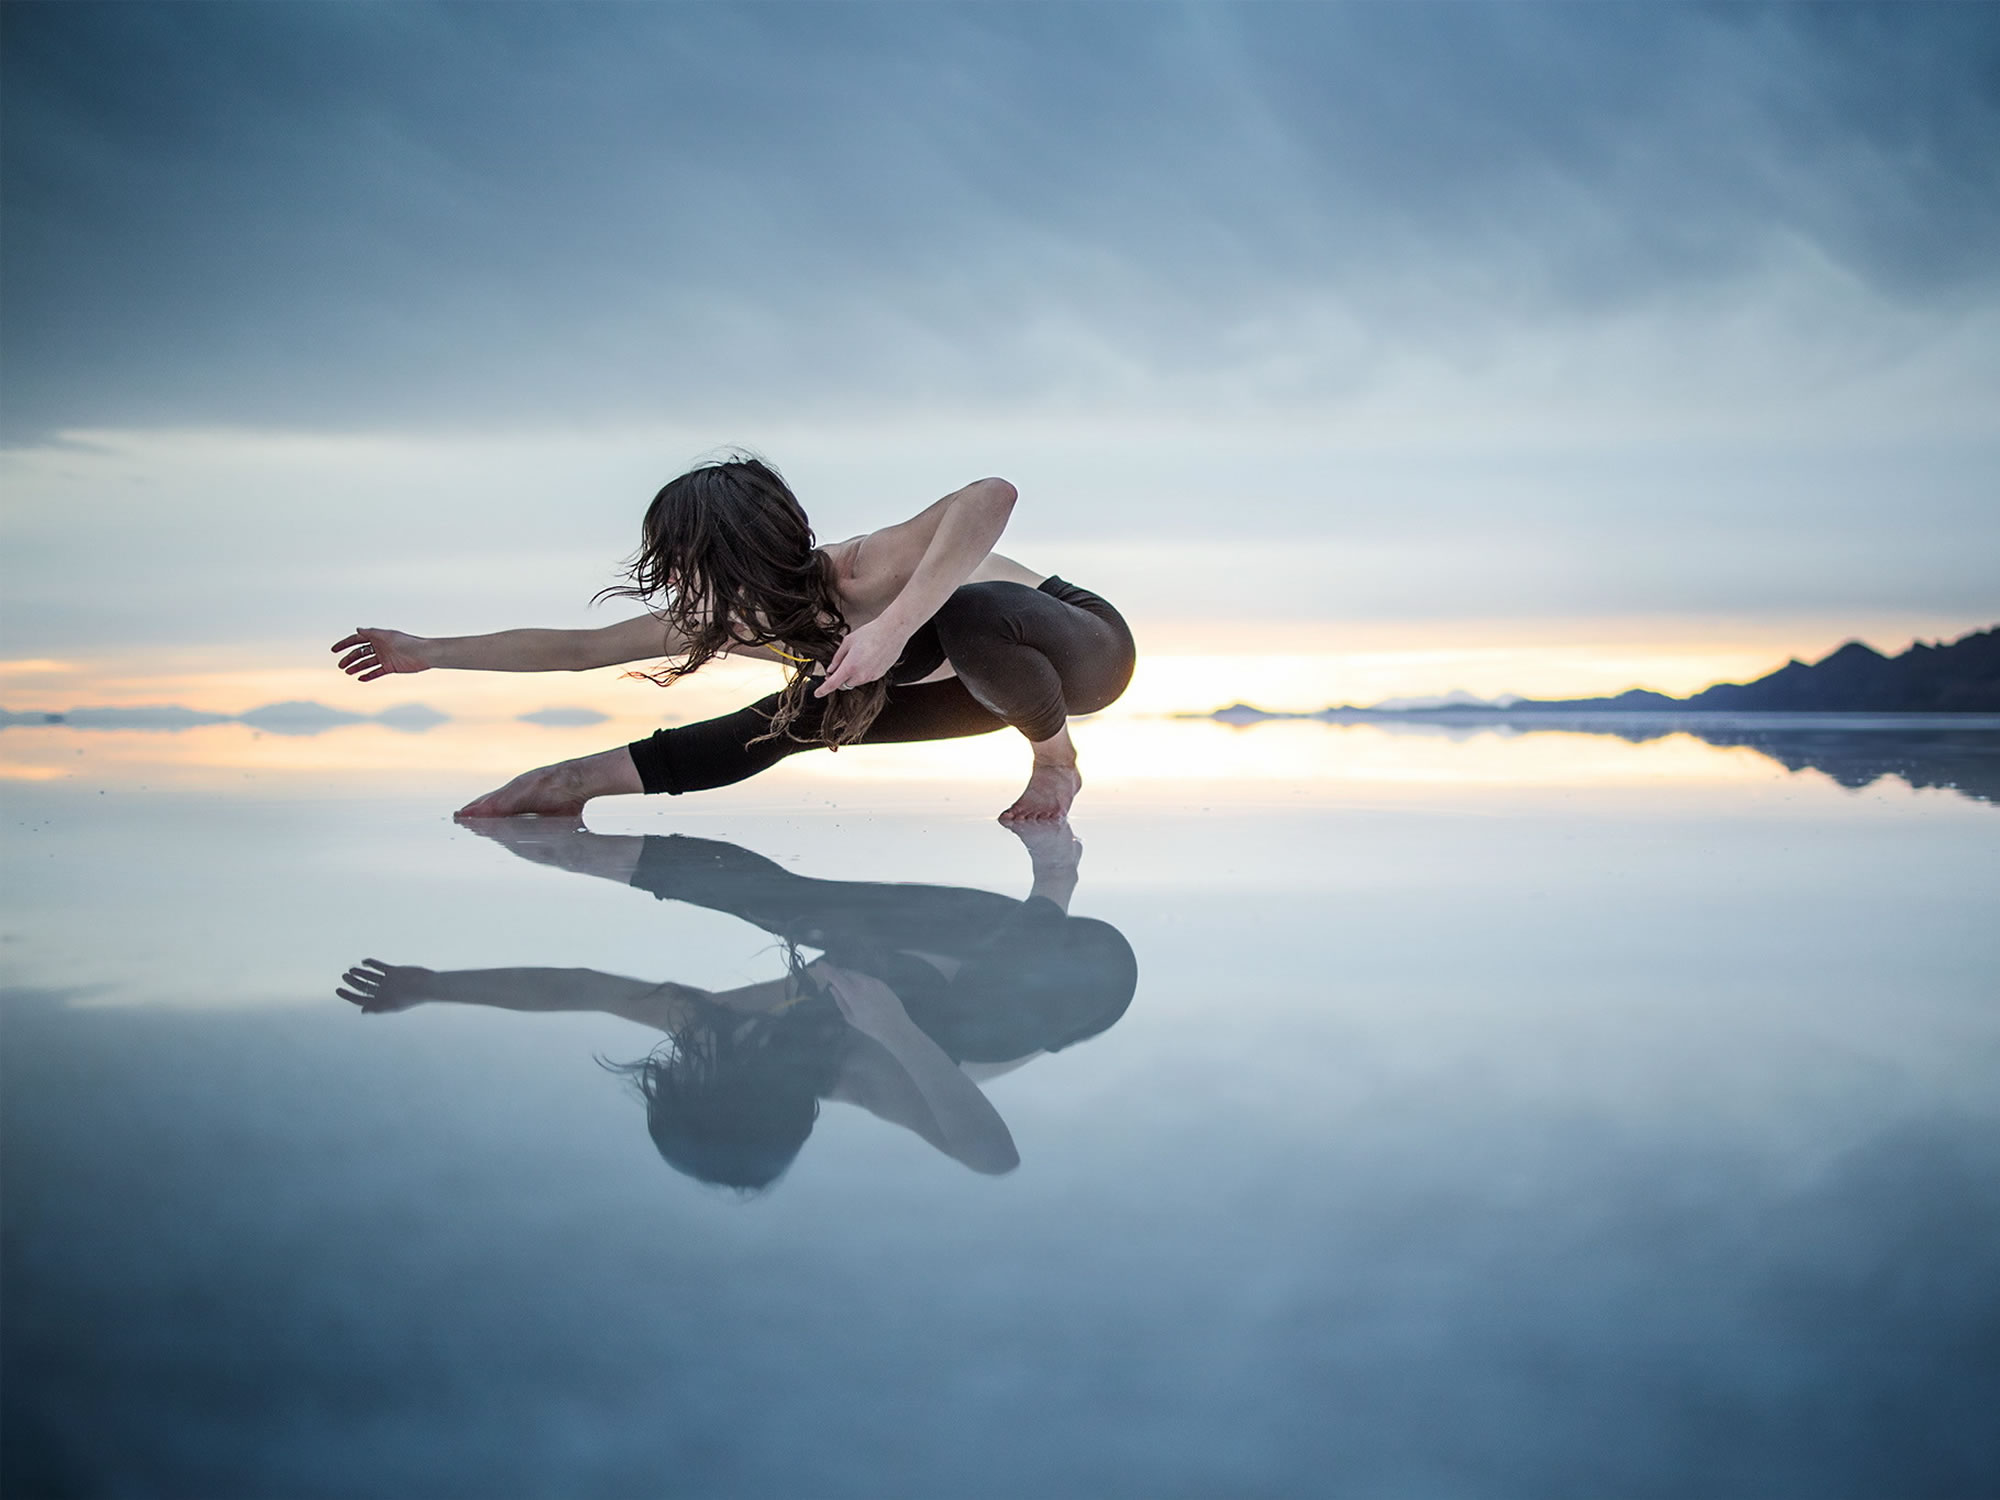 Dancer in the Uyuni Salt Flat